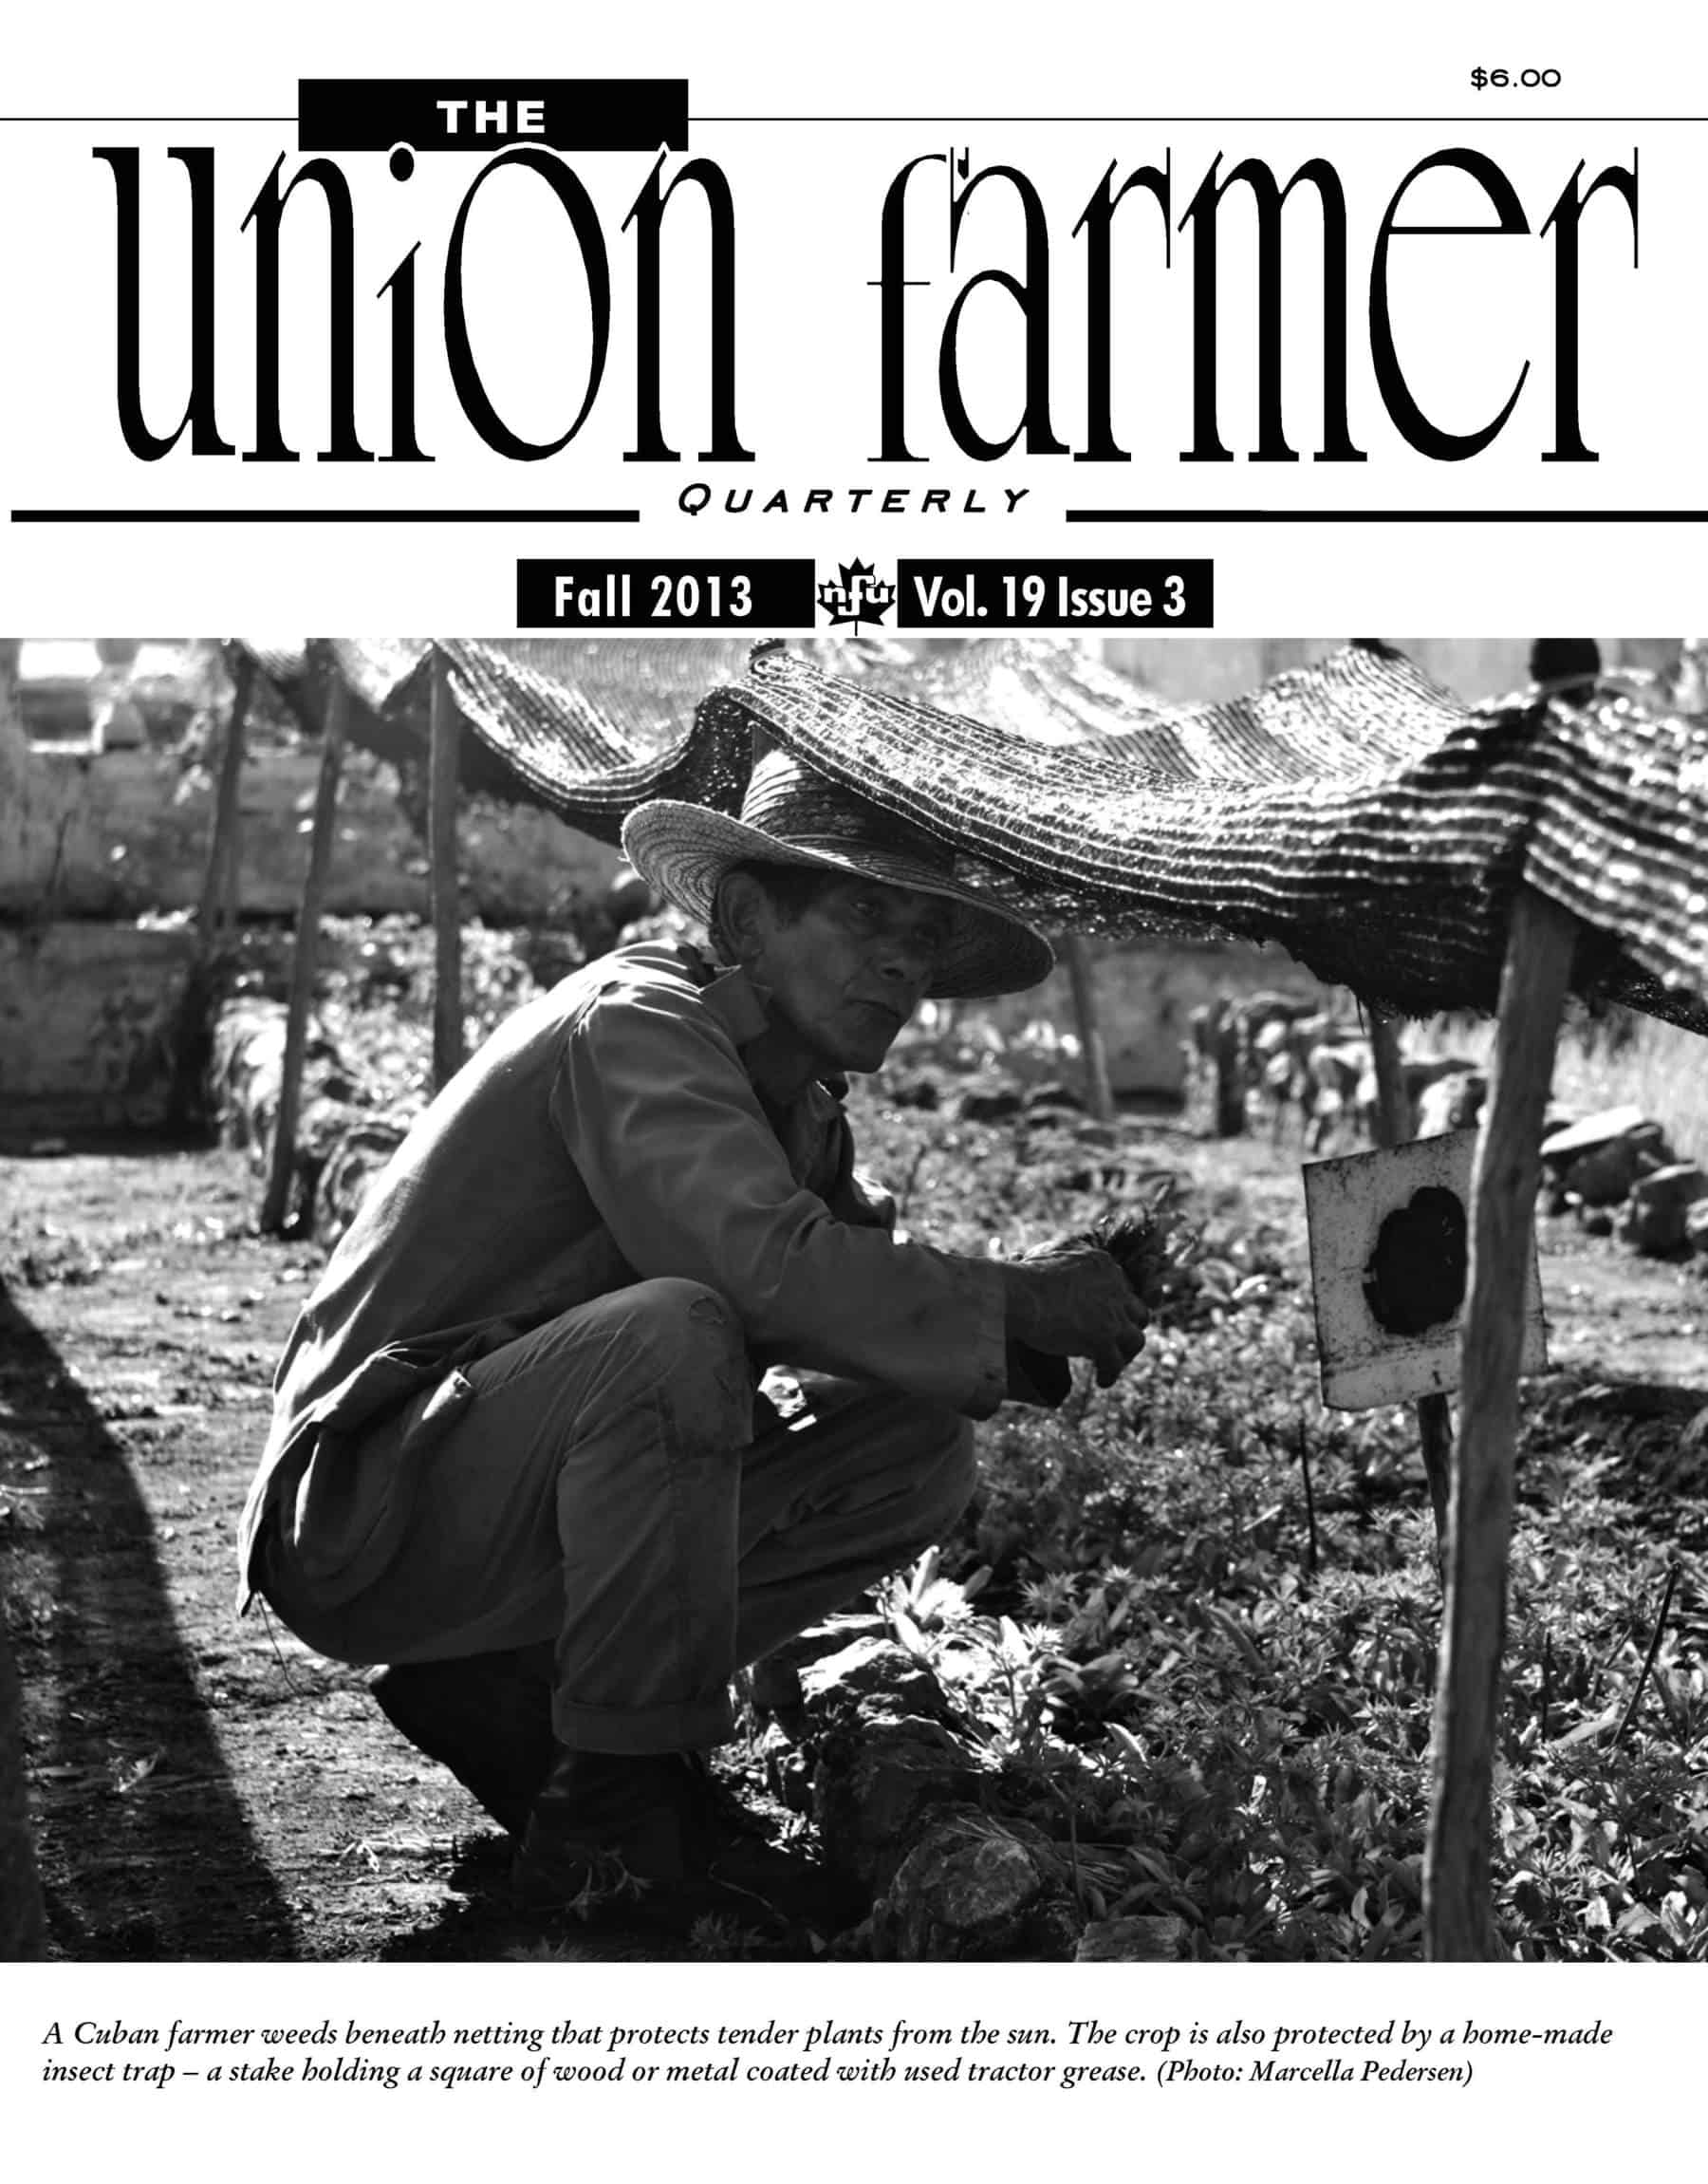 Union Farmer Quarterly: Fall 2013